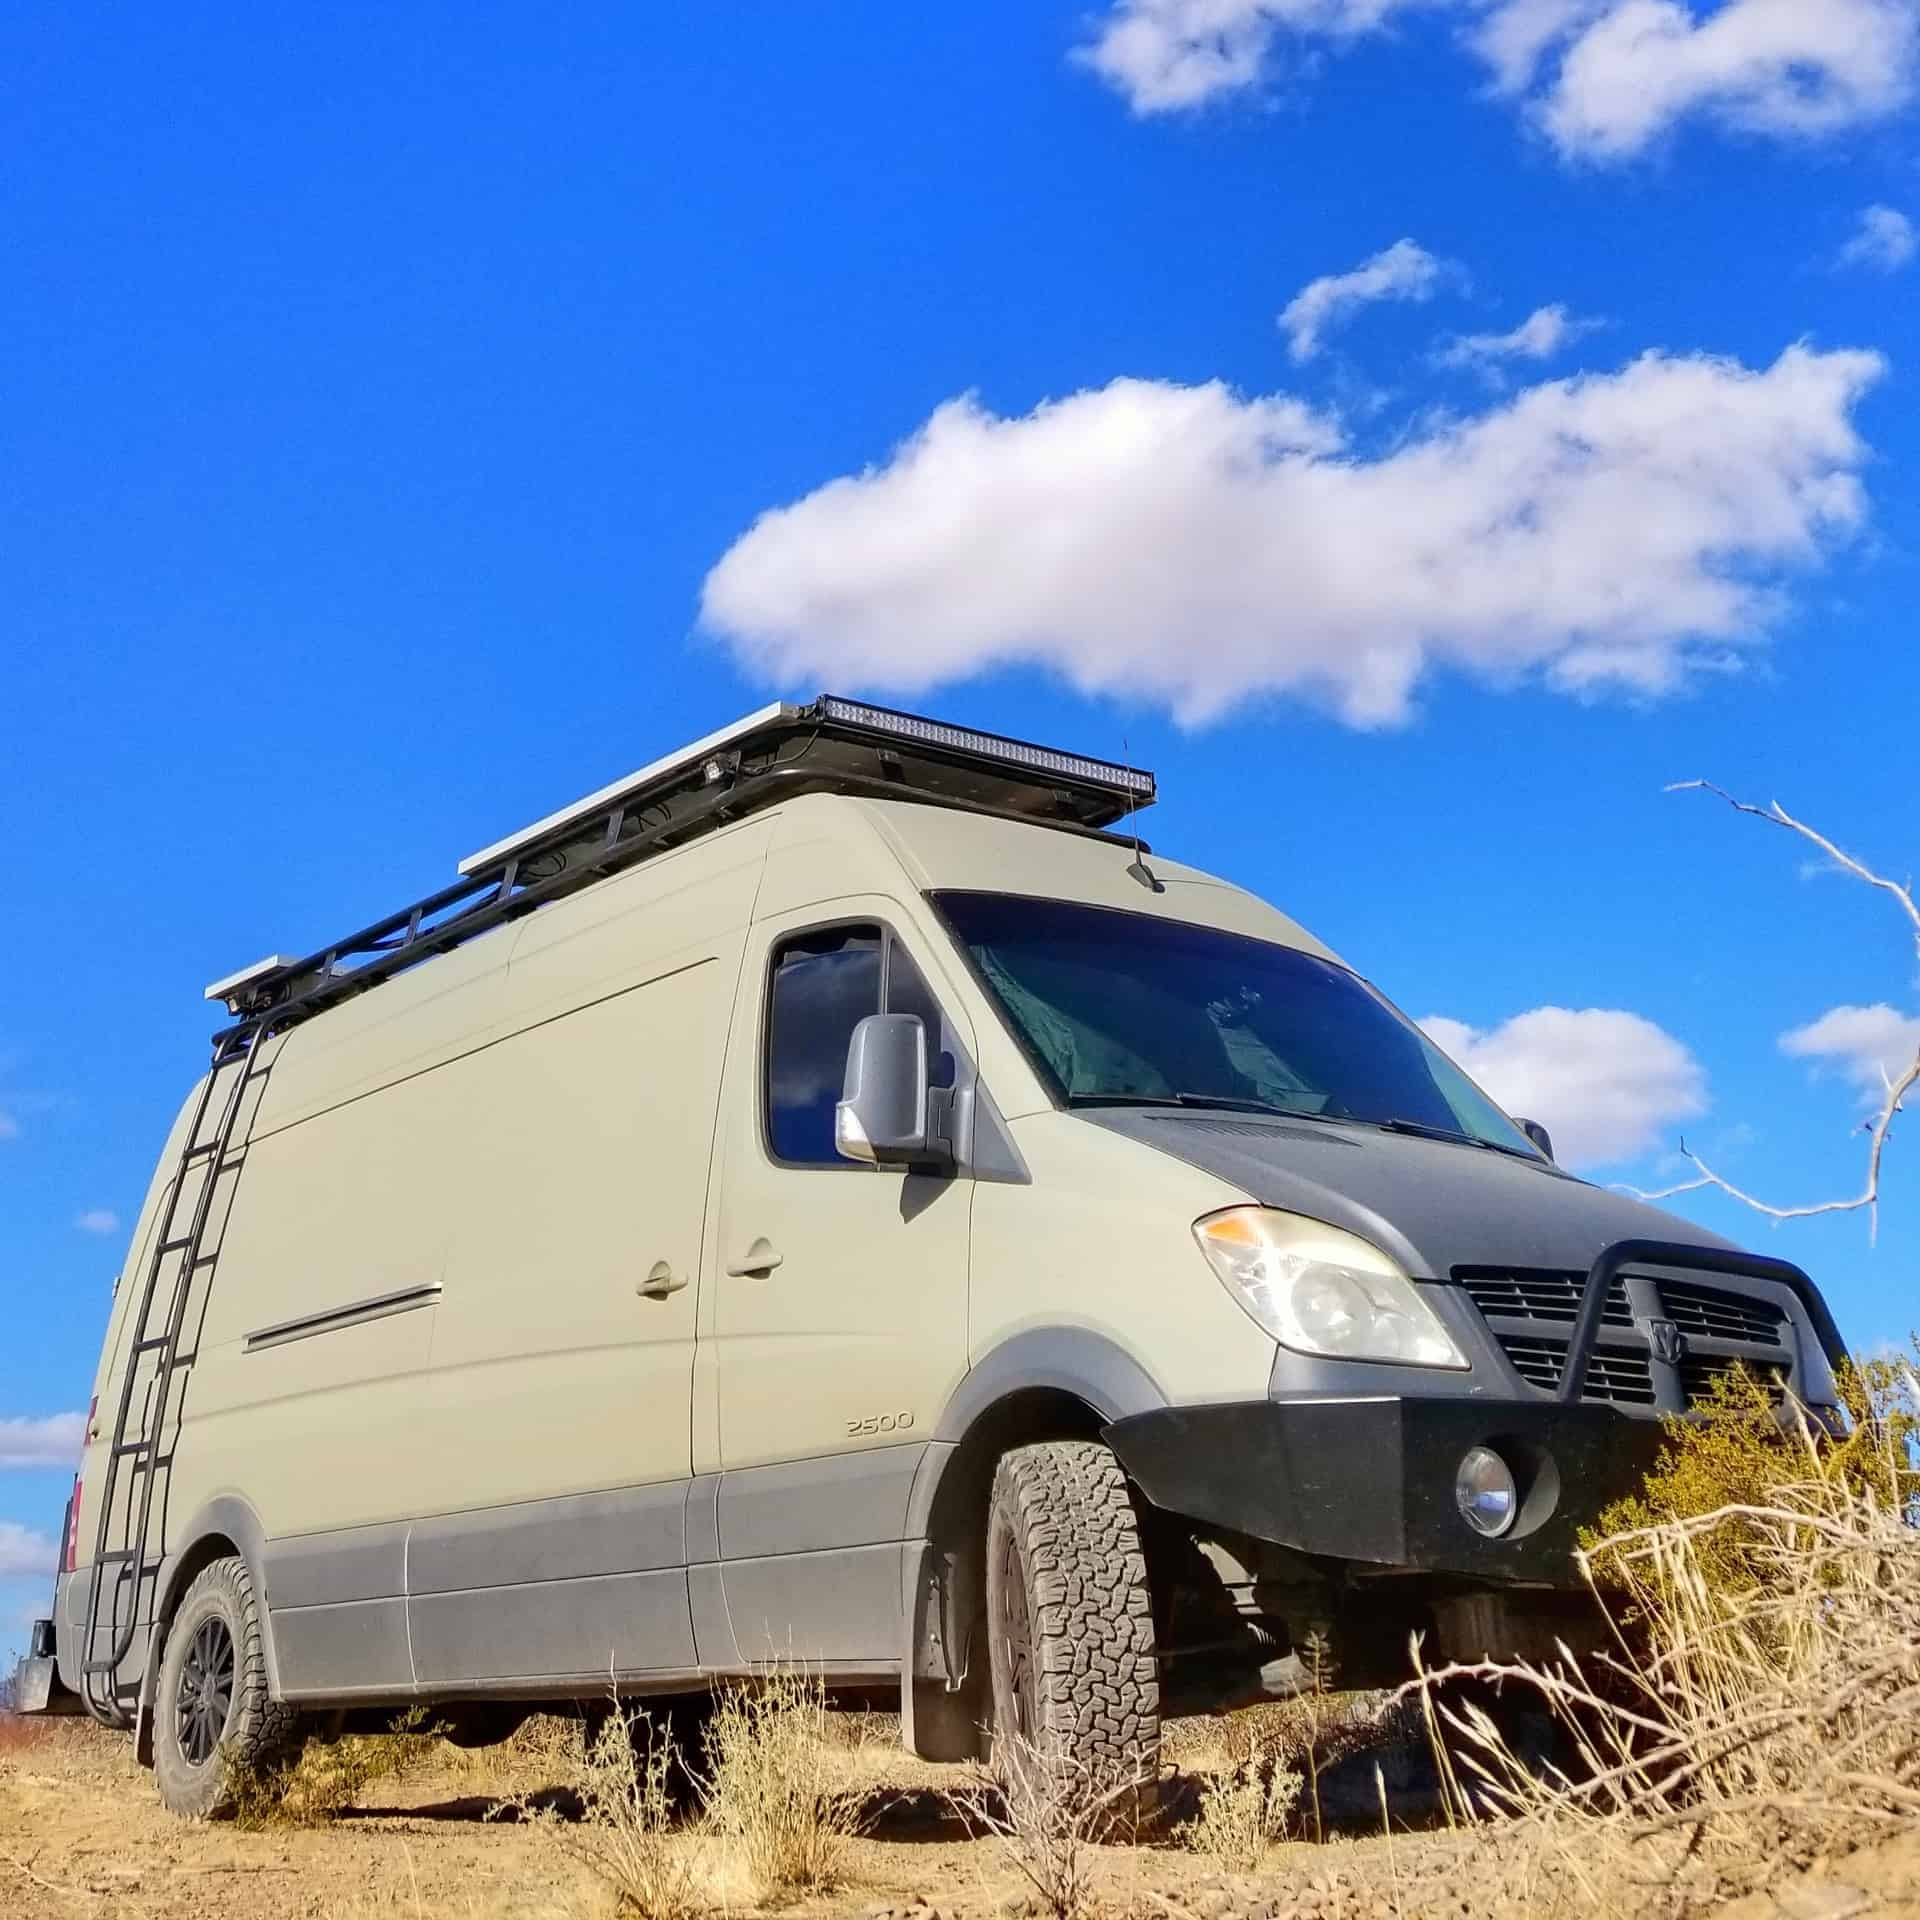 Red Rock Canyon Campsite